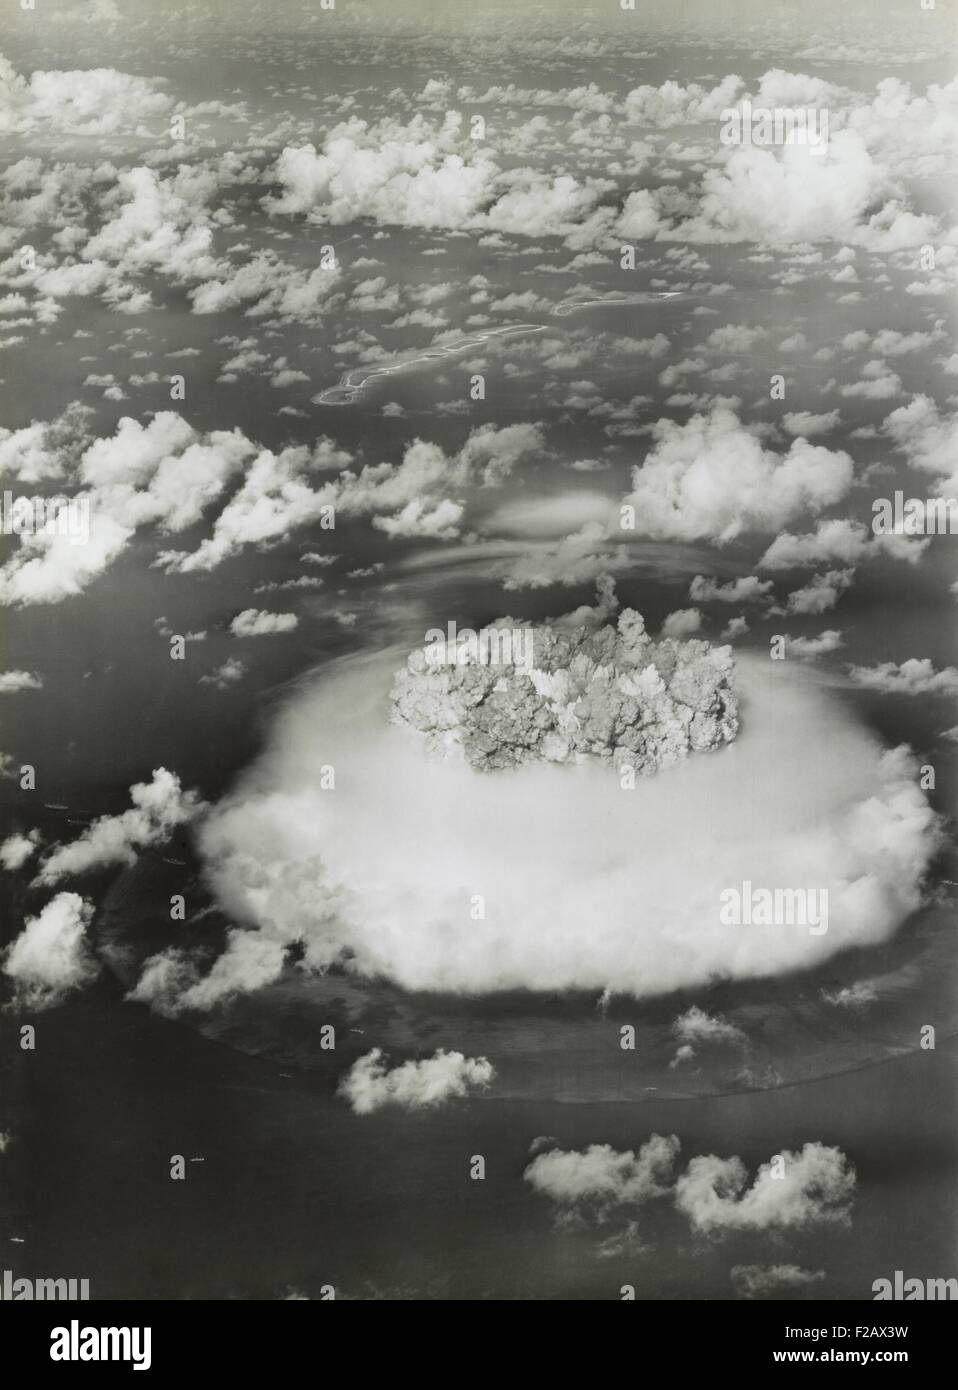 The BAKER test of Operation Crossroads, July 25, 1946. BAKER was exploded underwater, creating an underwater pressure - Stock Image